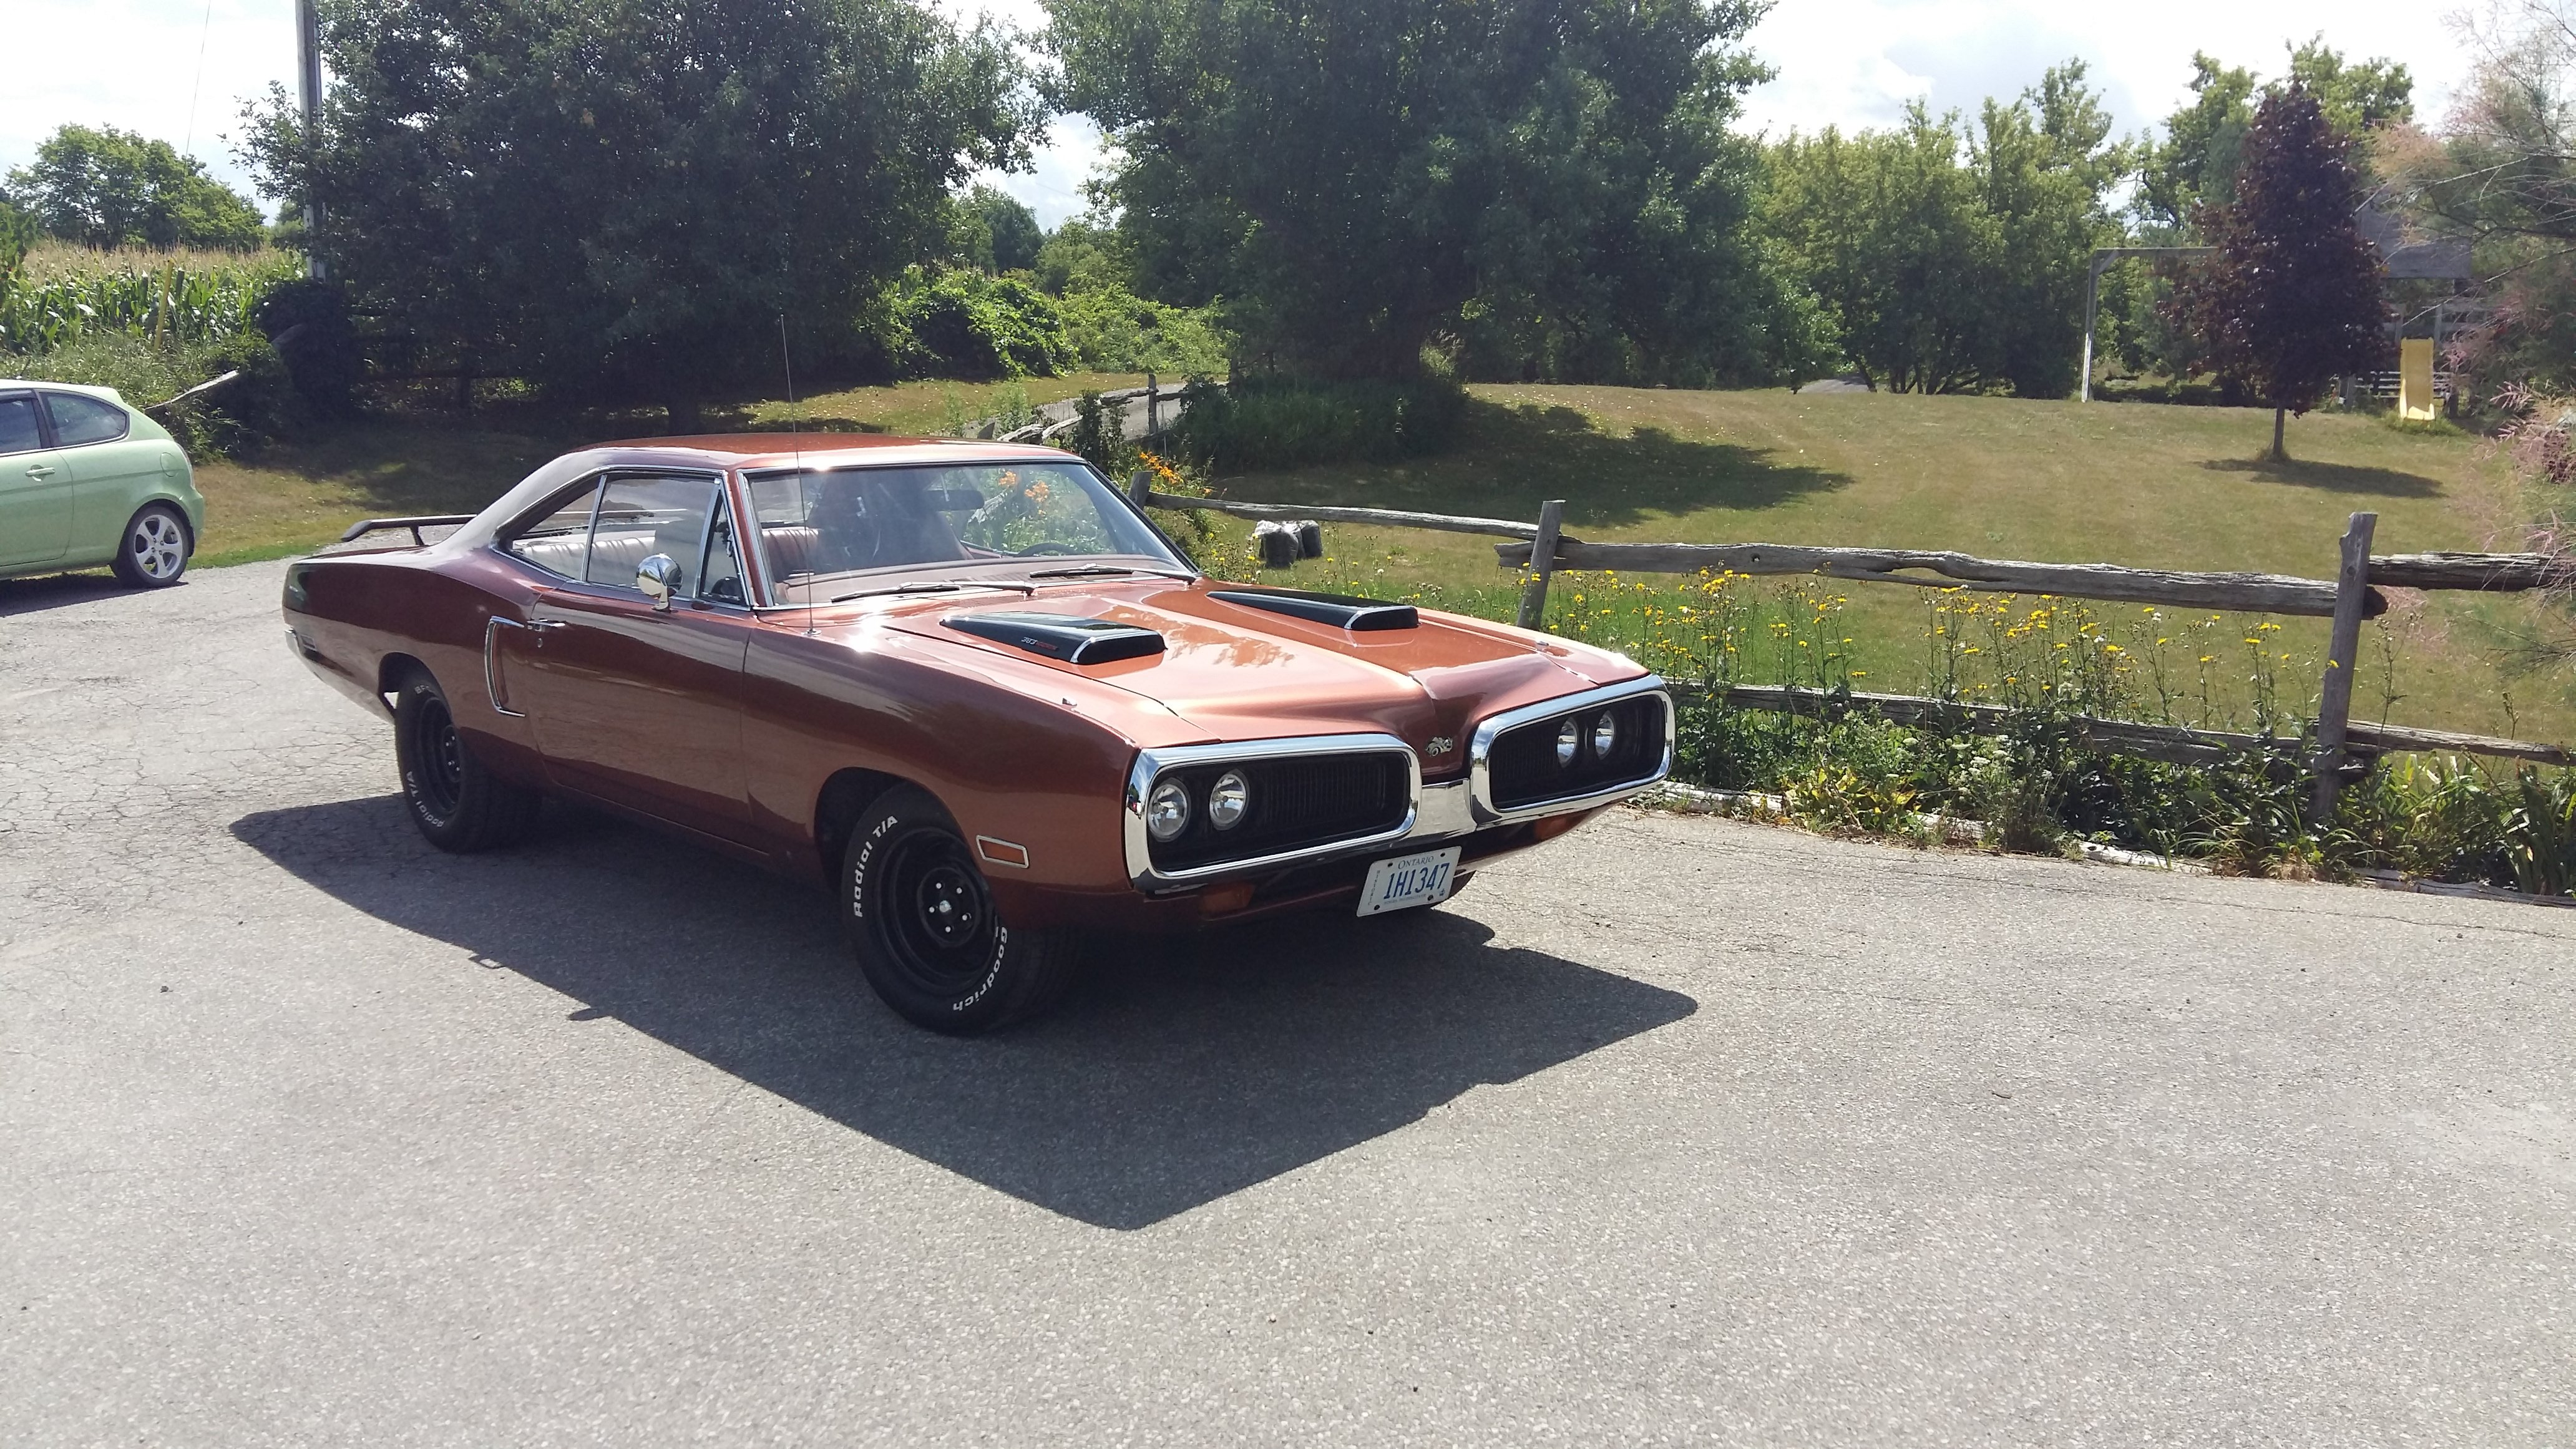 FOR SALE] - 1970 Dodge Coronet 500 for trade | For A Bodies Only ...